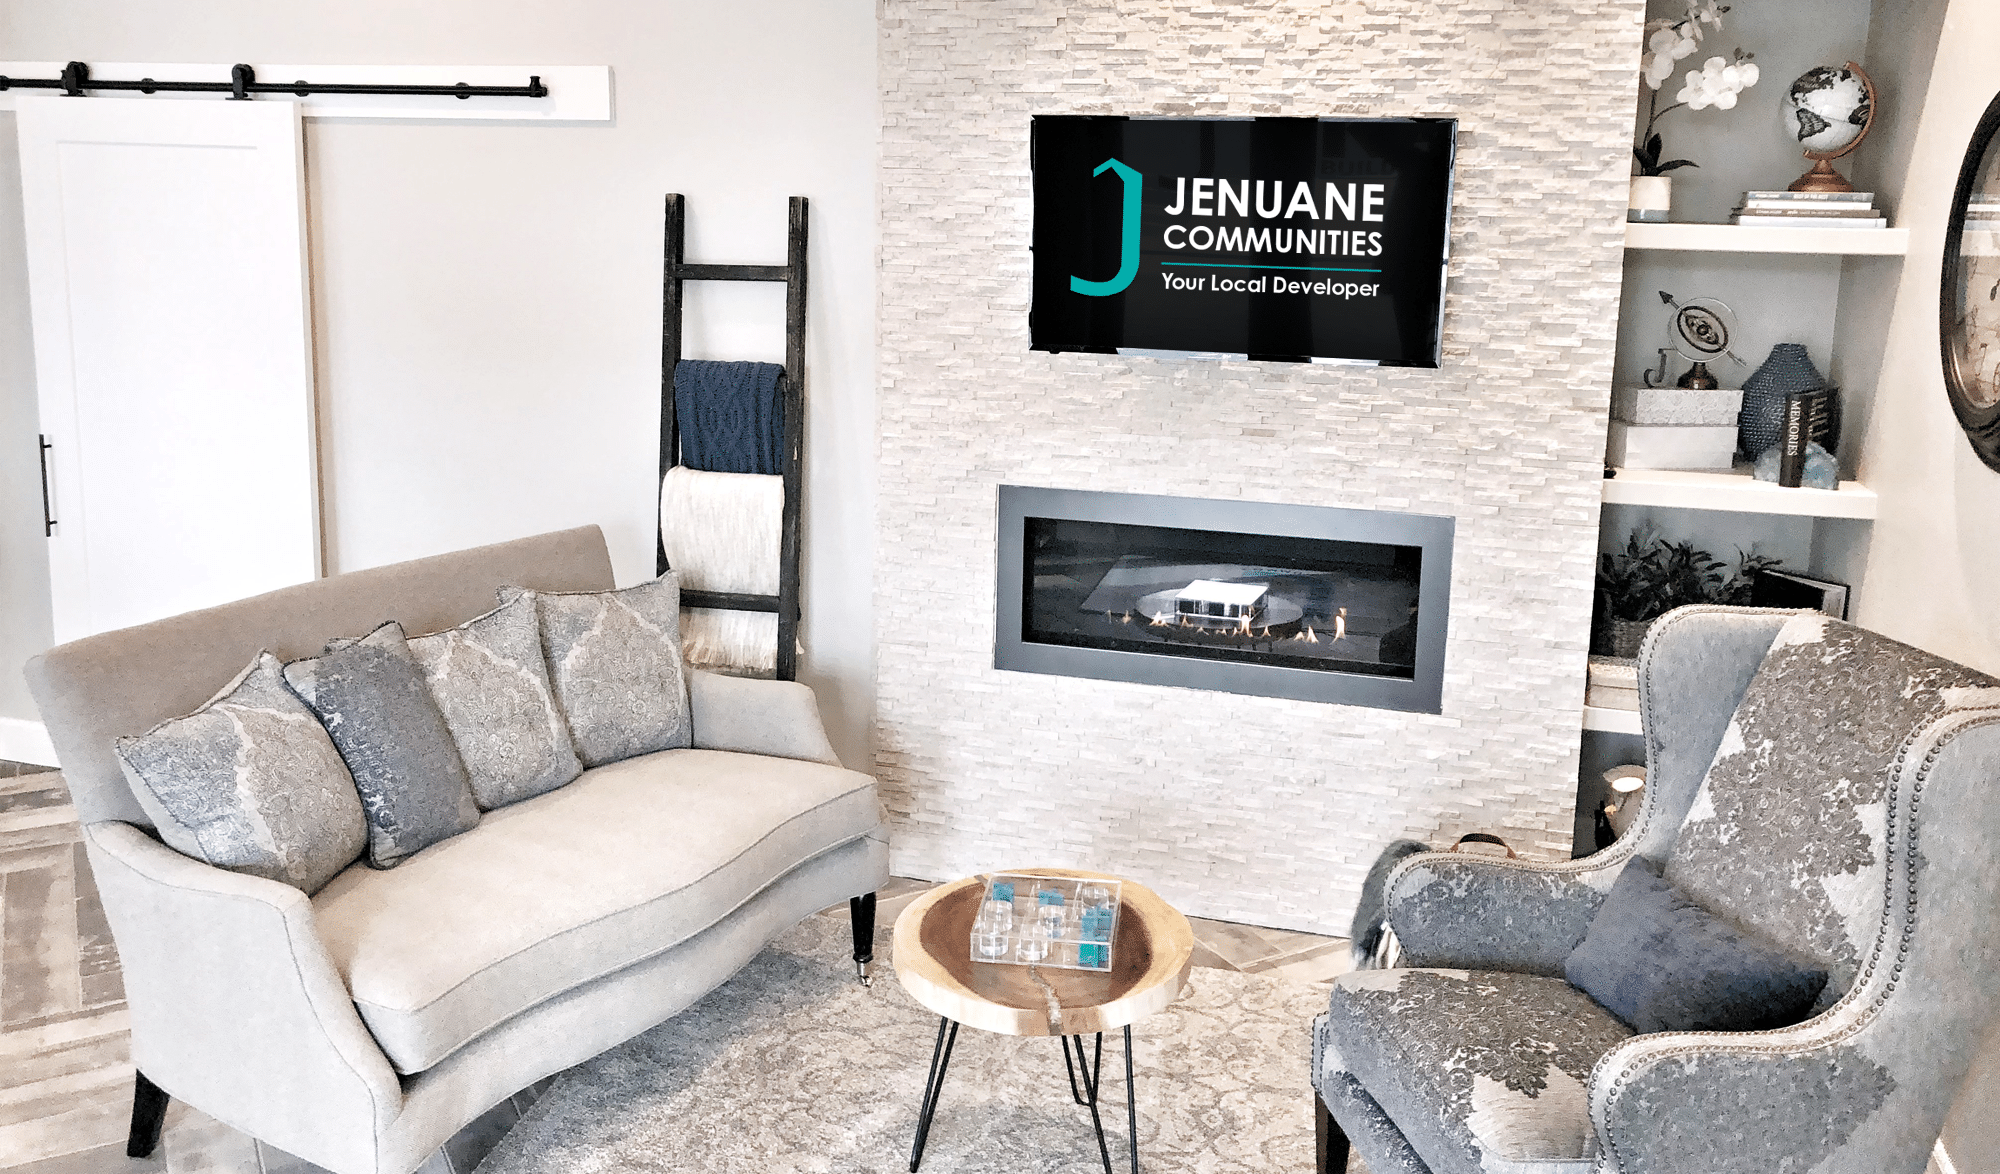 jenuane-communities-design-center-new-homes